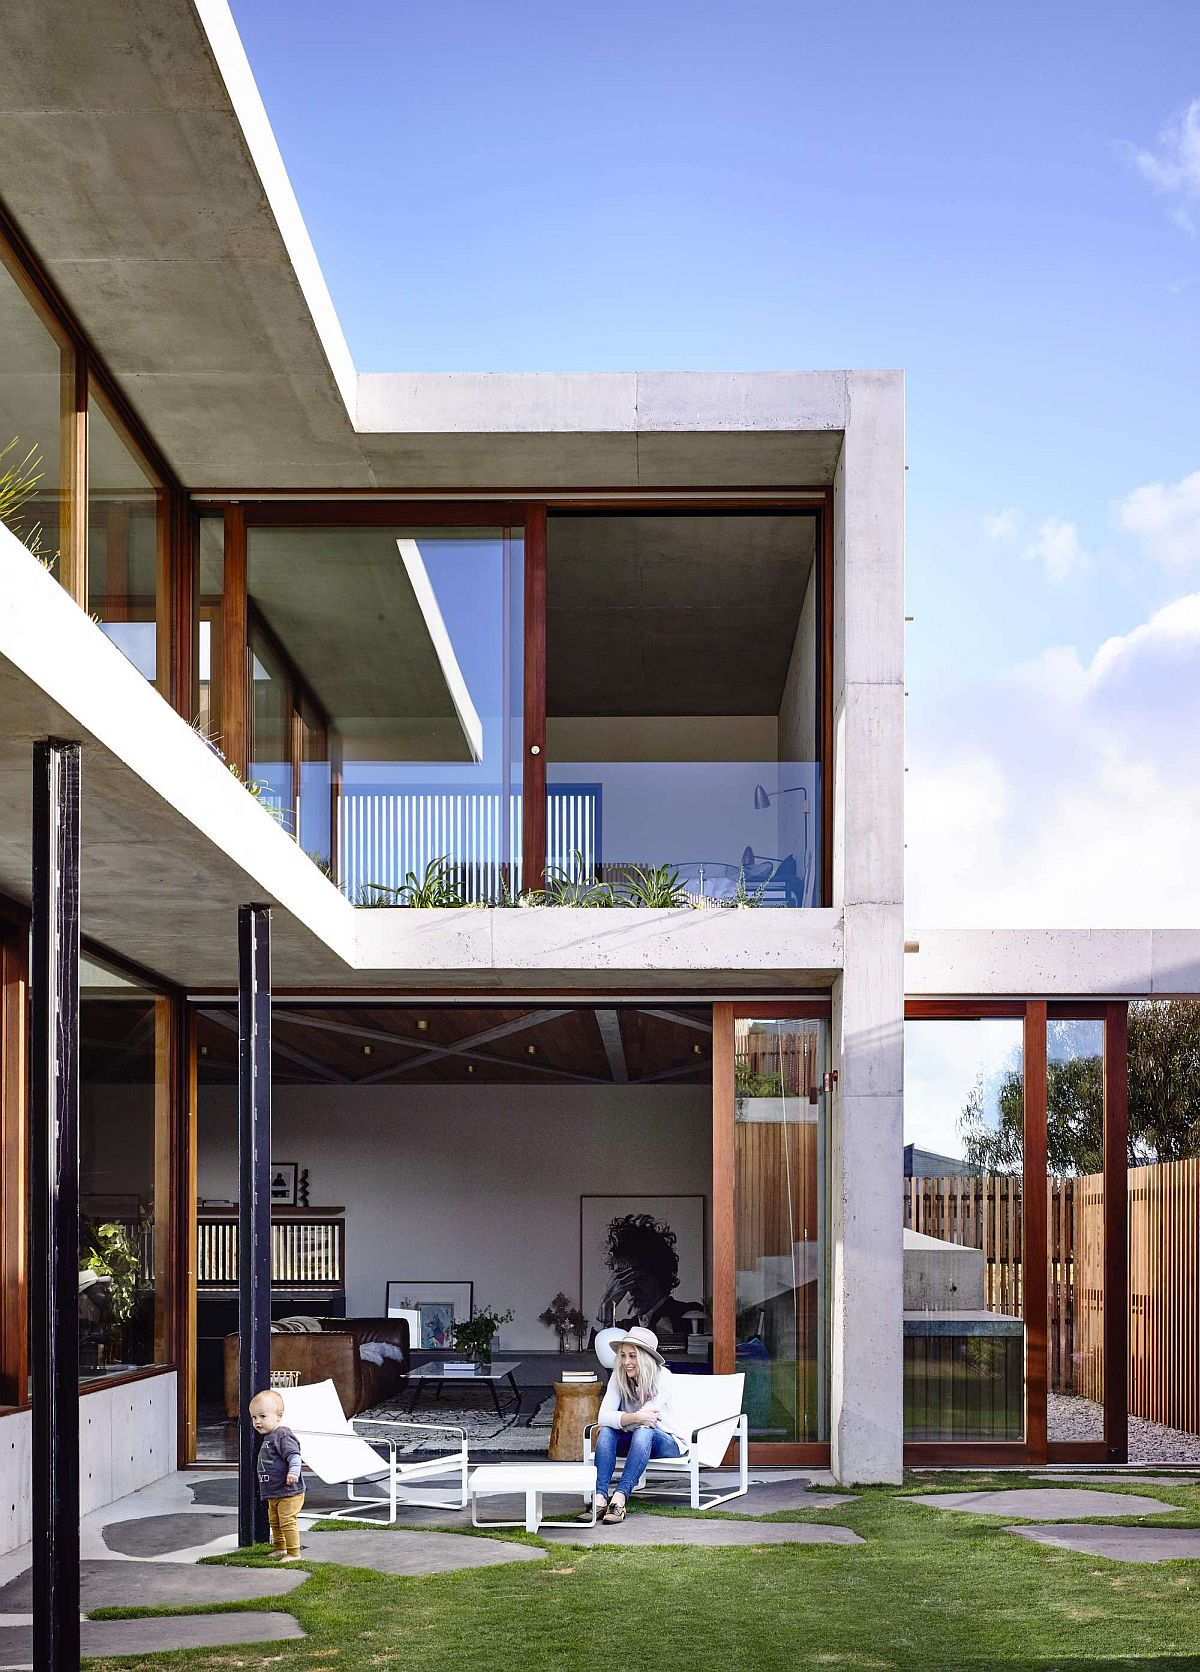 Structure of the house create a natural inviting garden